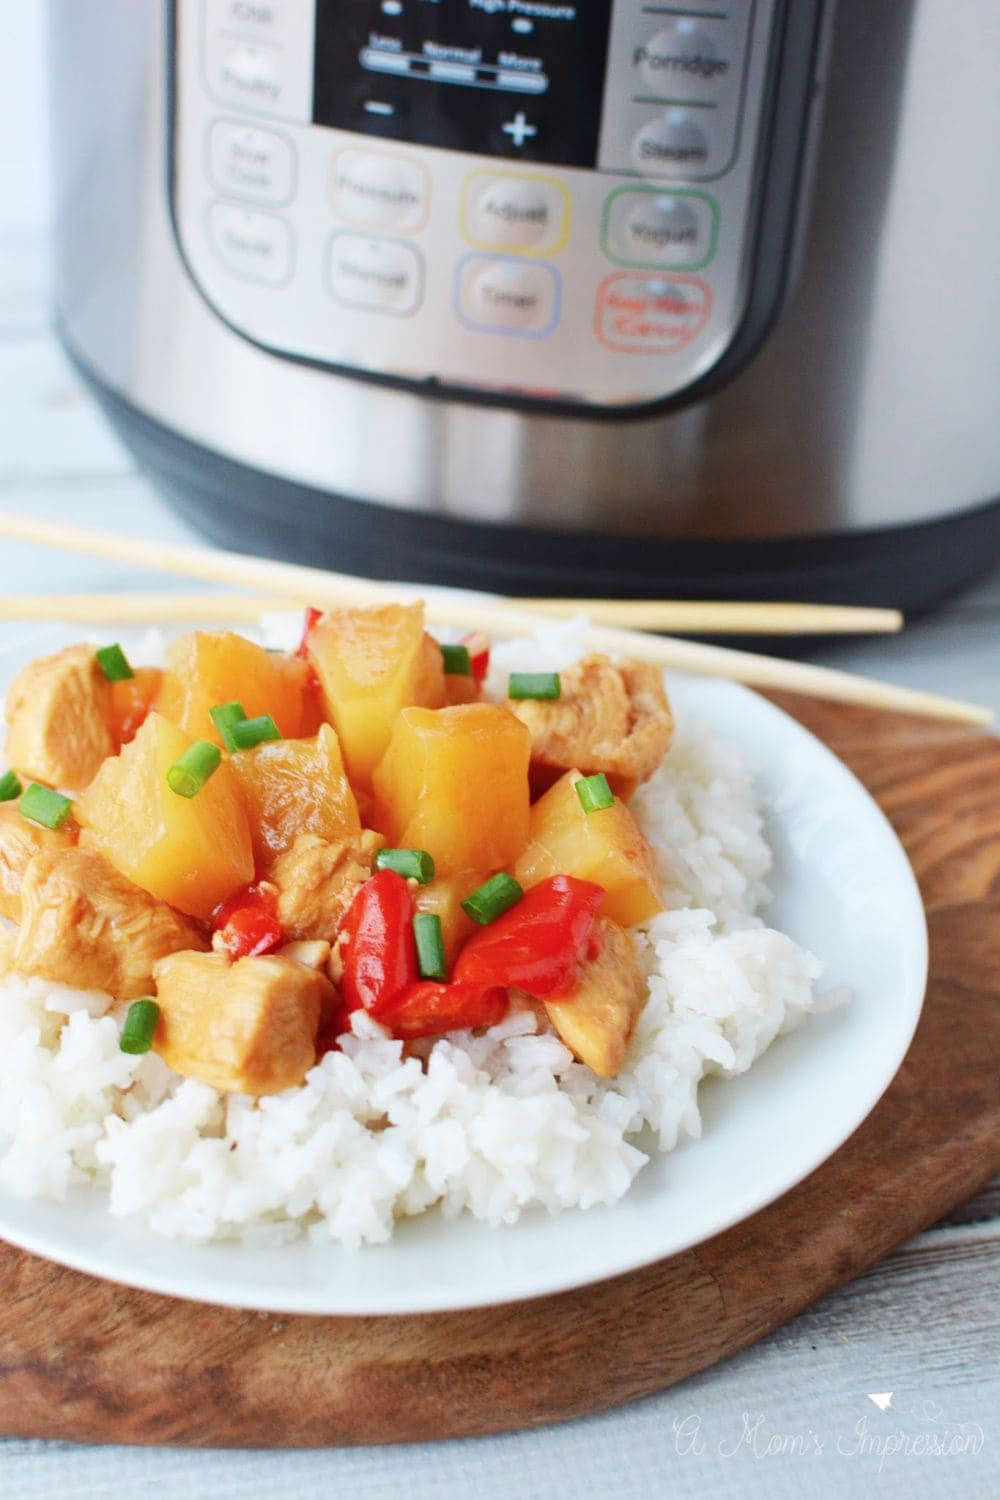 Instant Pot Sweet and Sour Chicken is so easy to make in your pressure cooker